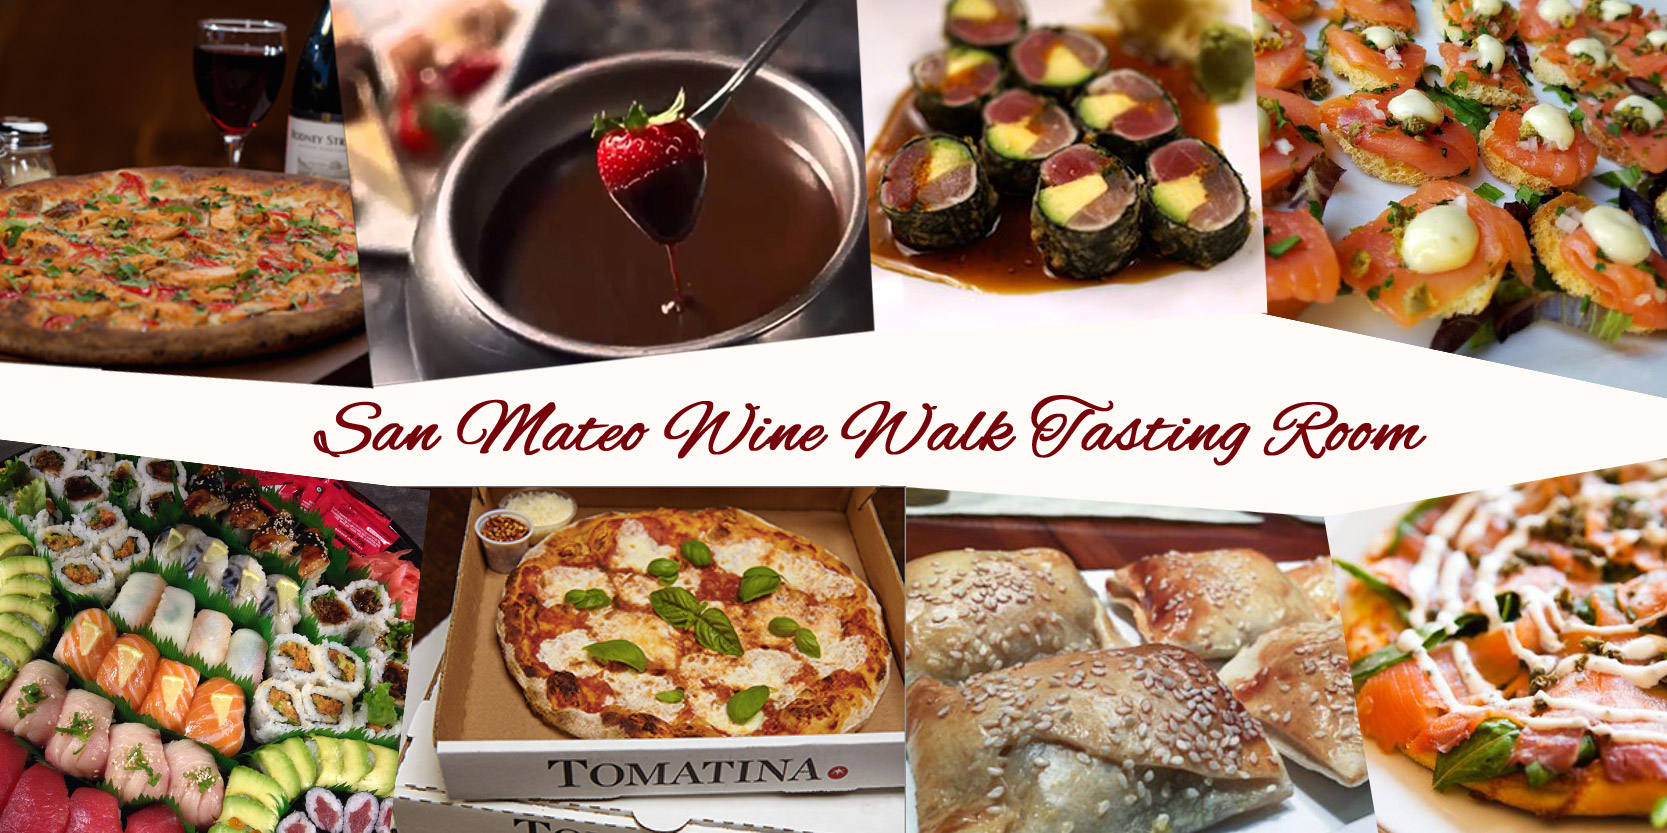 San Mateo Wine Walk Tasting Room